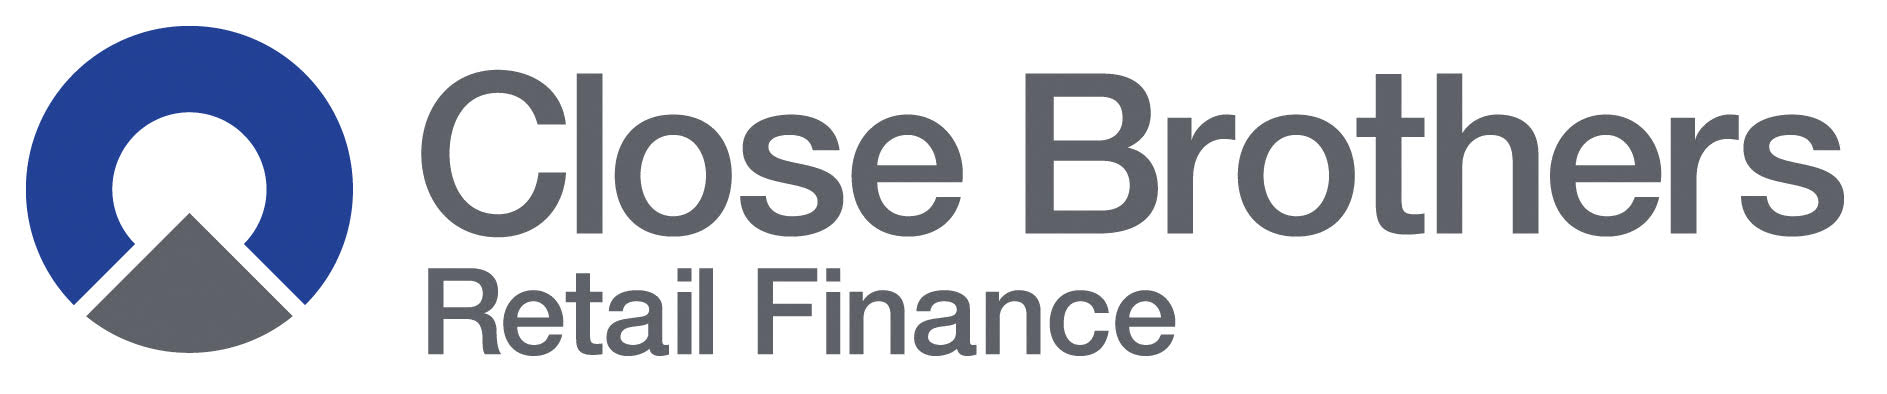 Close Brothers Retail Finance